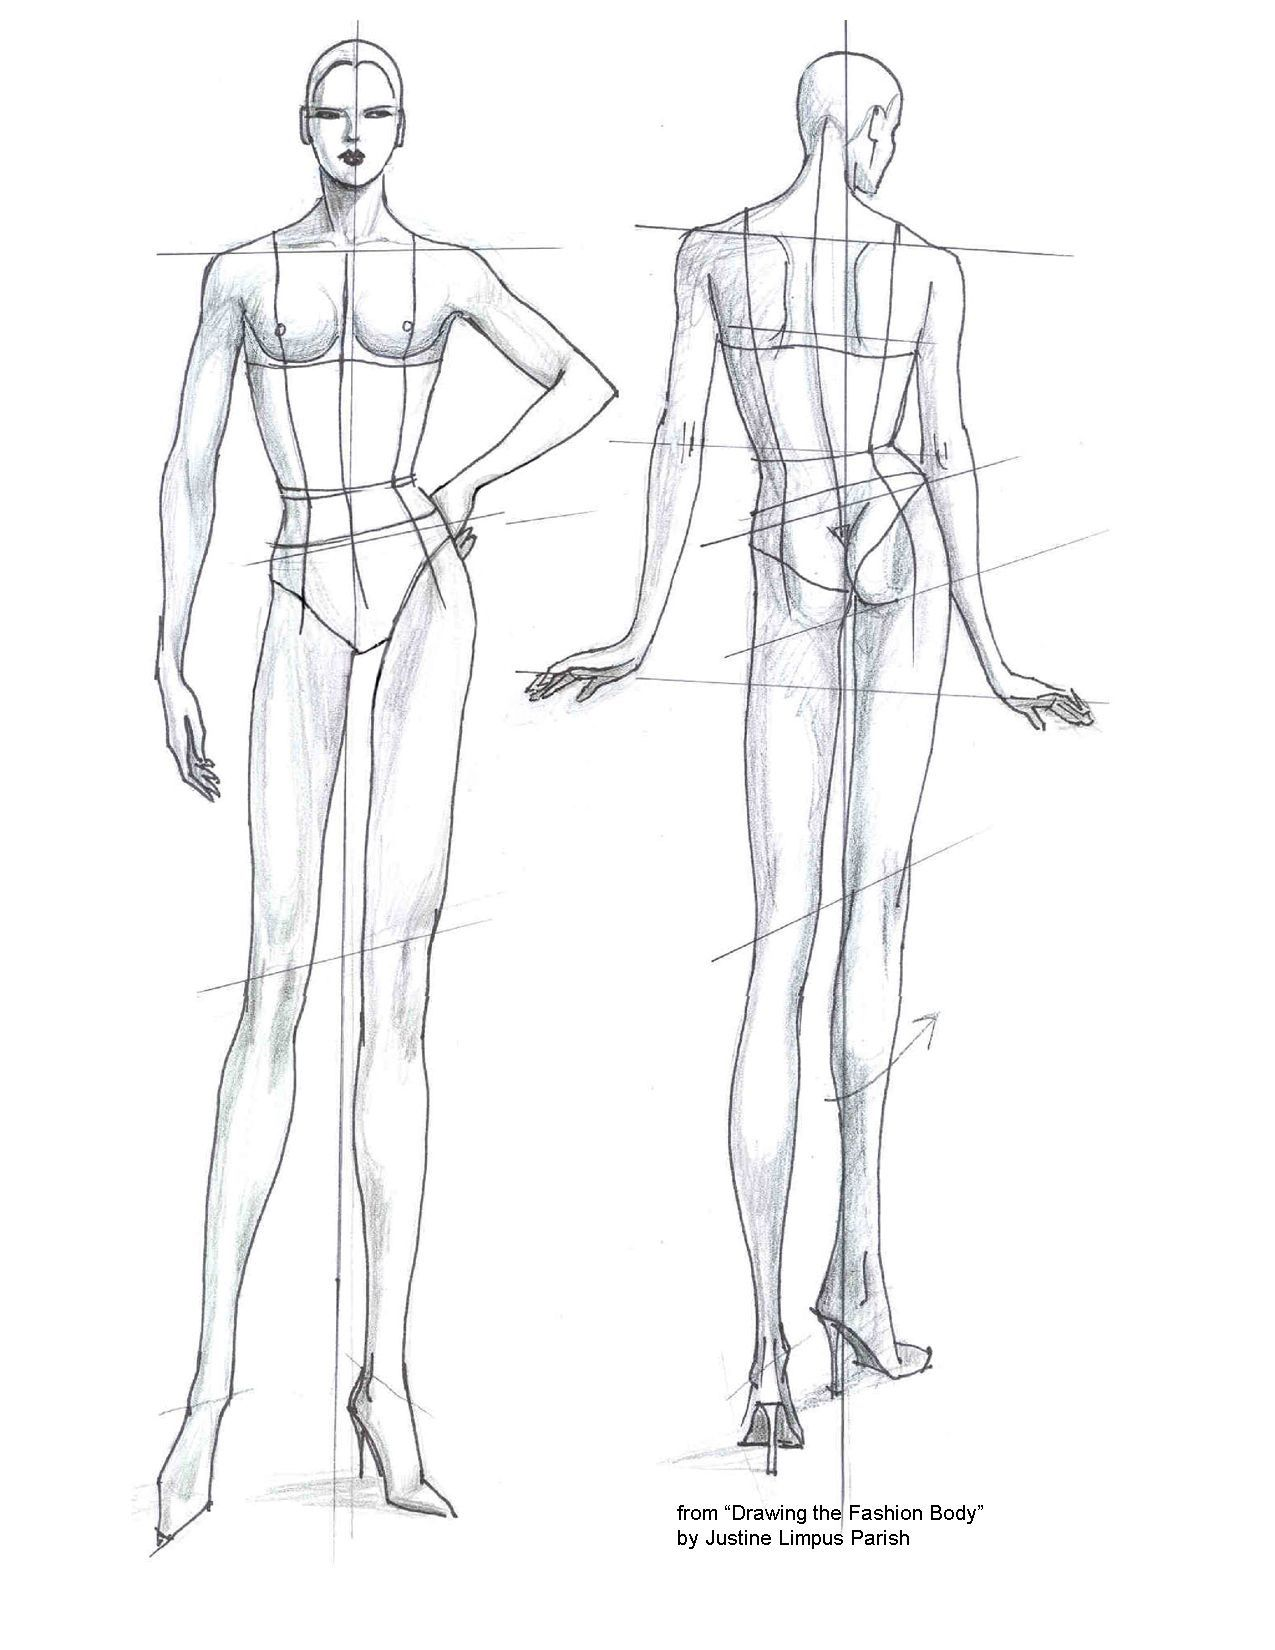 007 Unbelievable Body Template For Fashion Design Photo  Female Male HumanFull